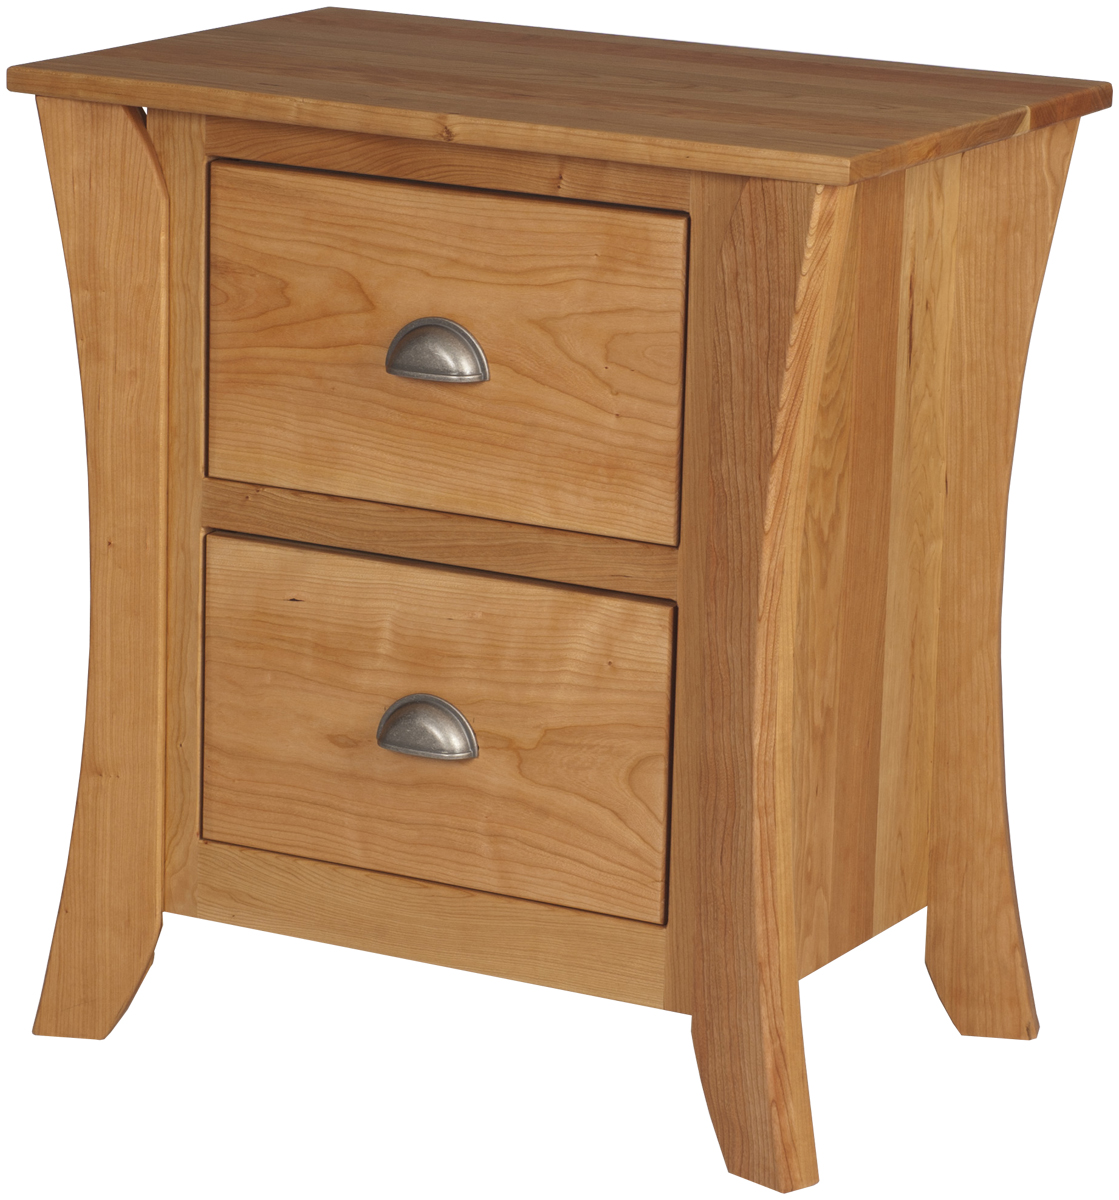 Kyoto Nightstand With Drawers Solid Wood Nightstand In